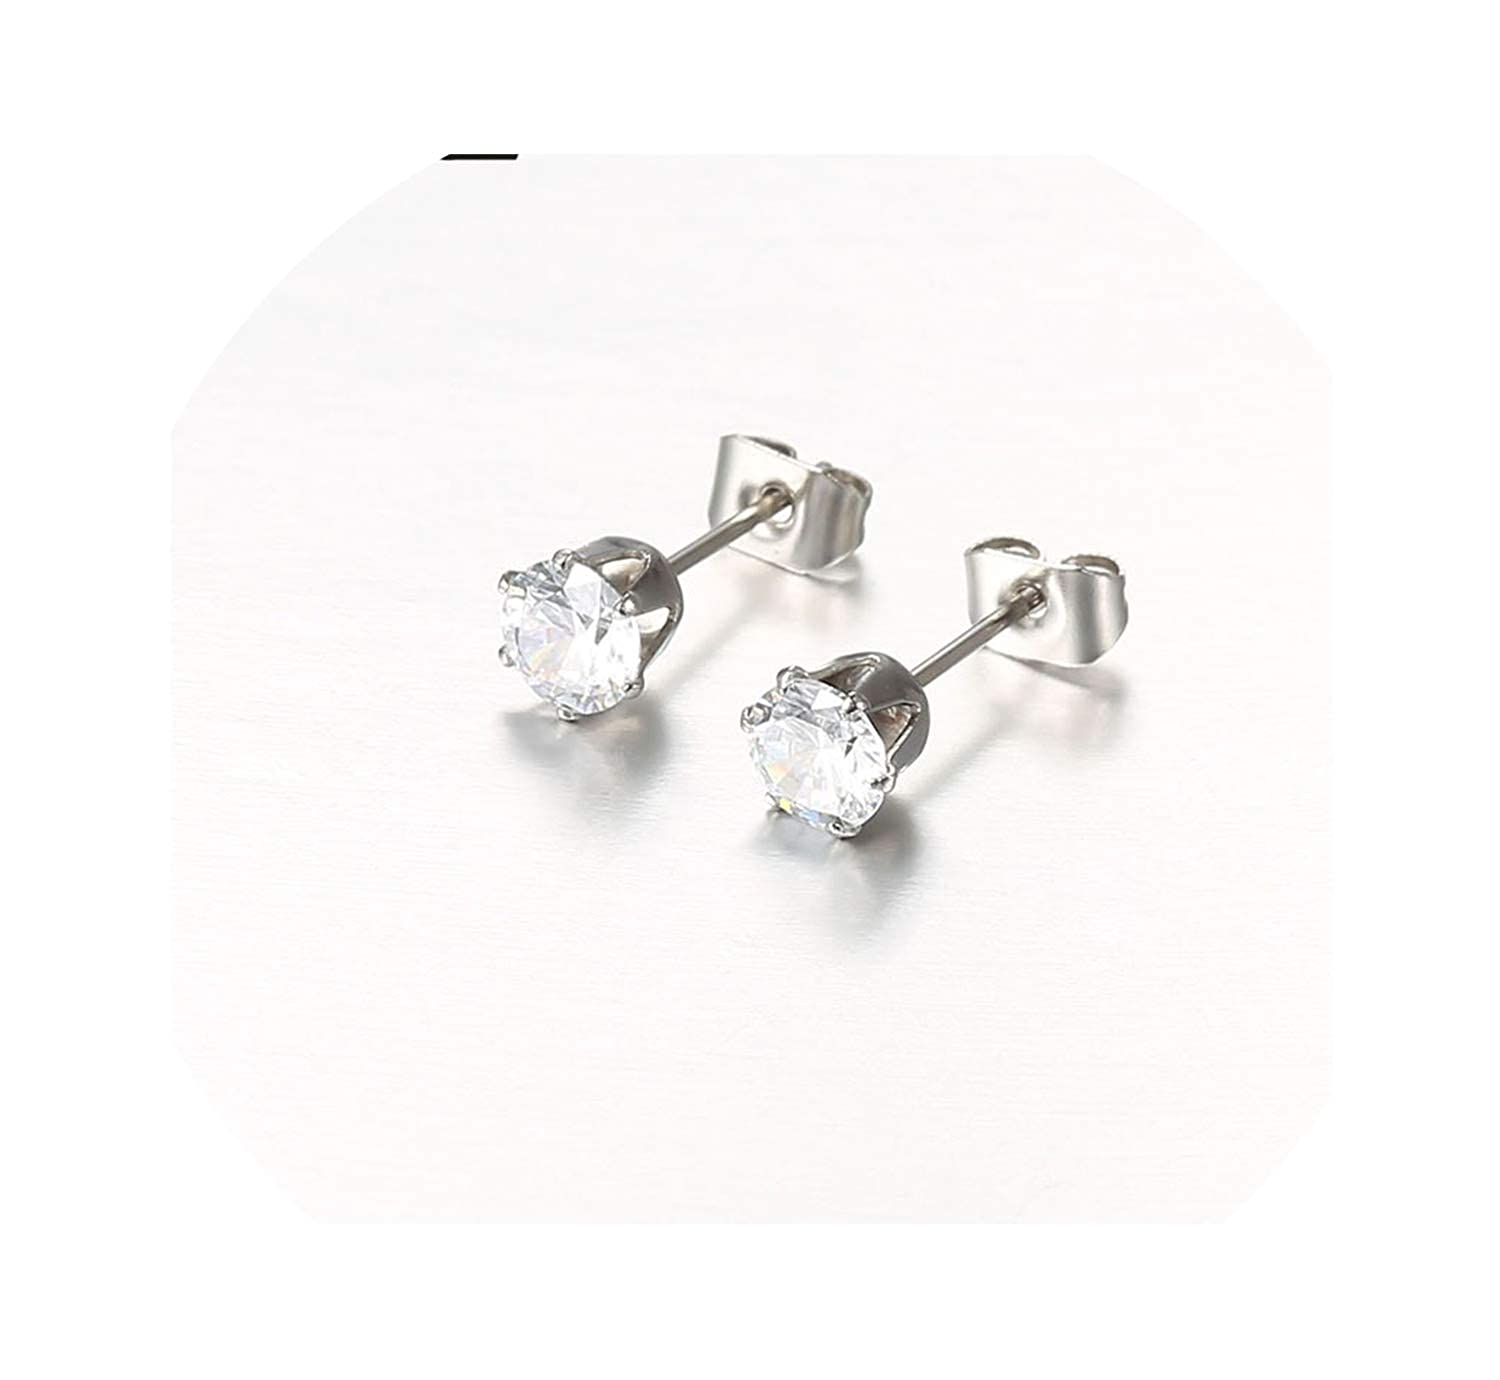 Square Ball Spike Crystal Rose Gold Color Earings Ear Stud for Women Brinco